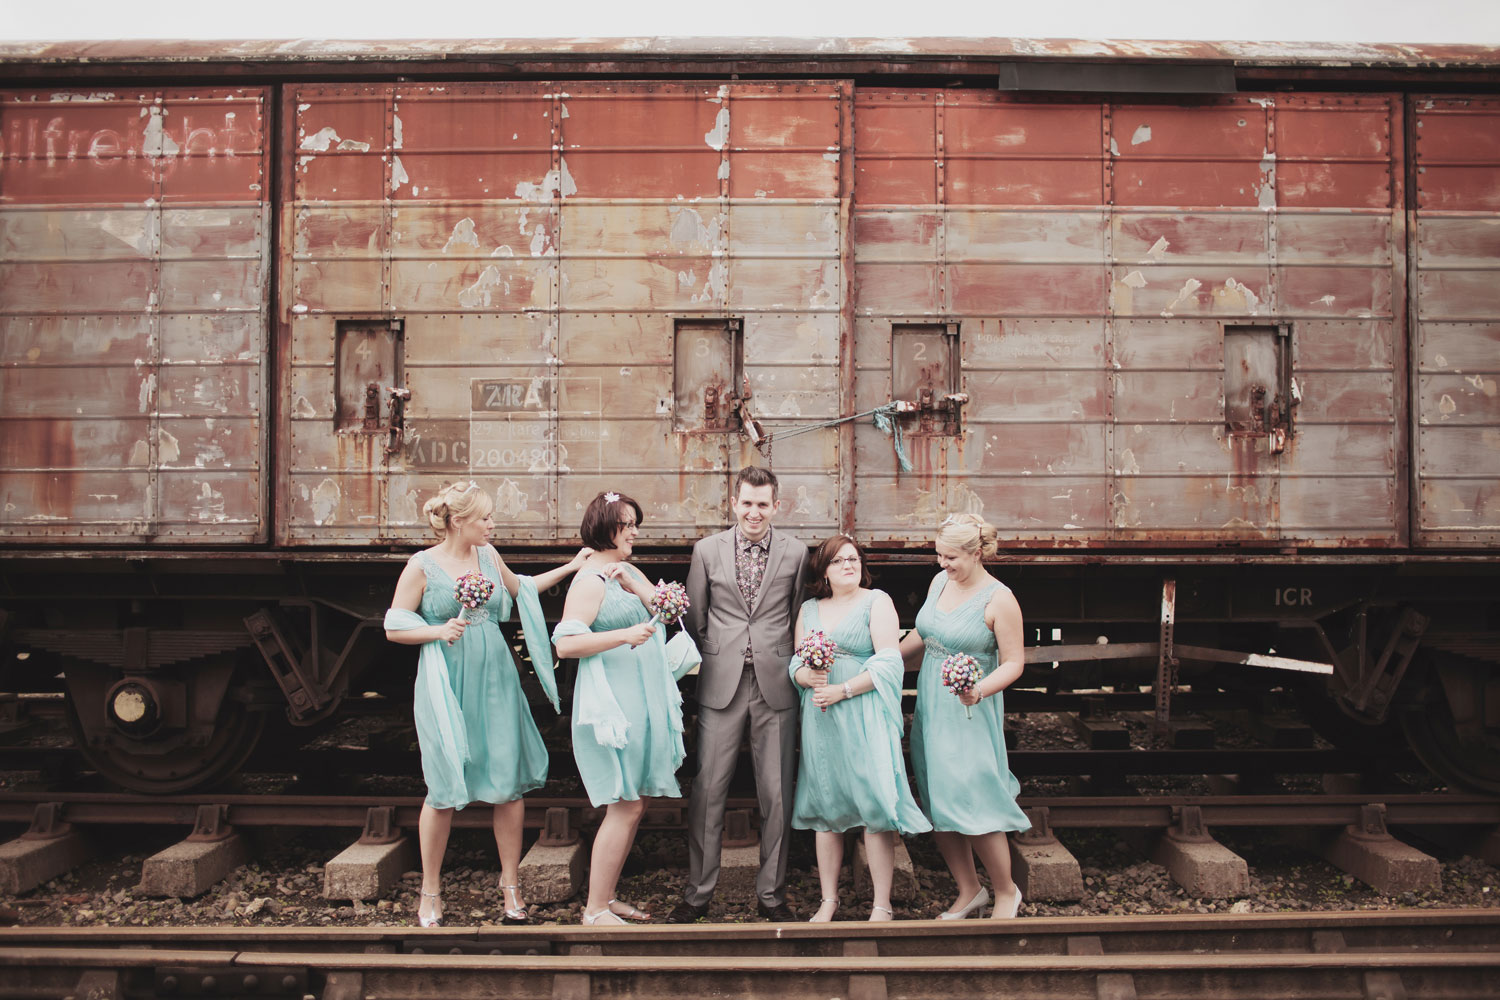 Groom posing for group photo with bridesmaids